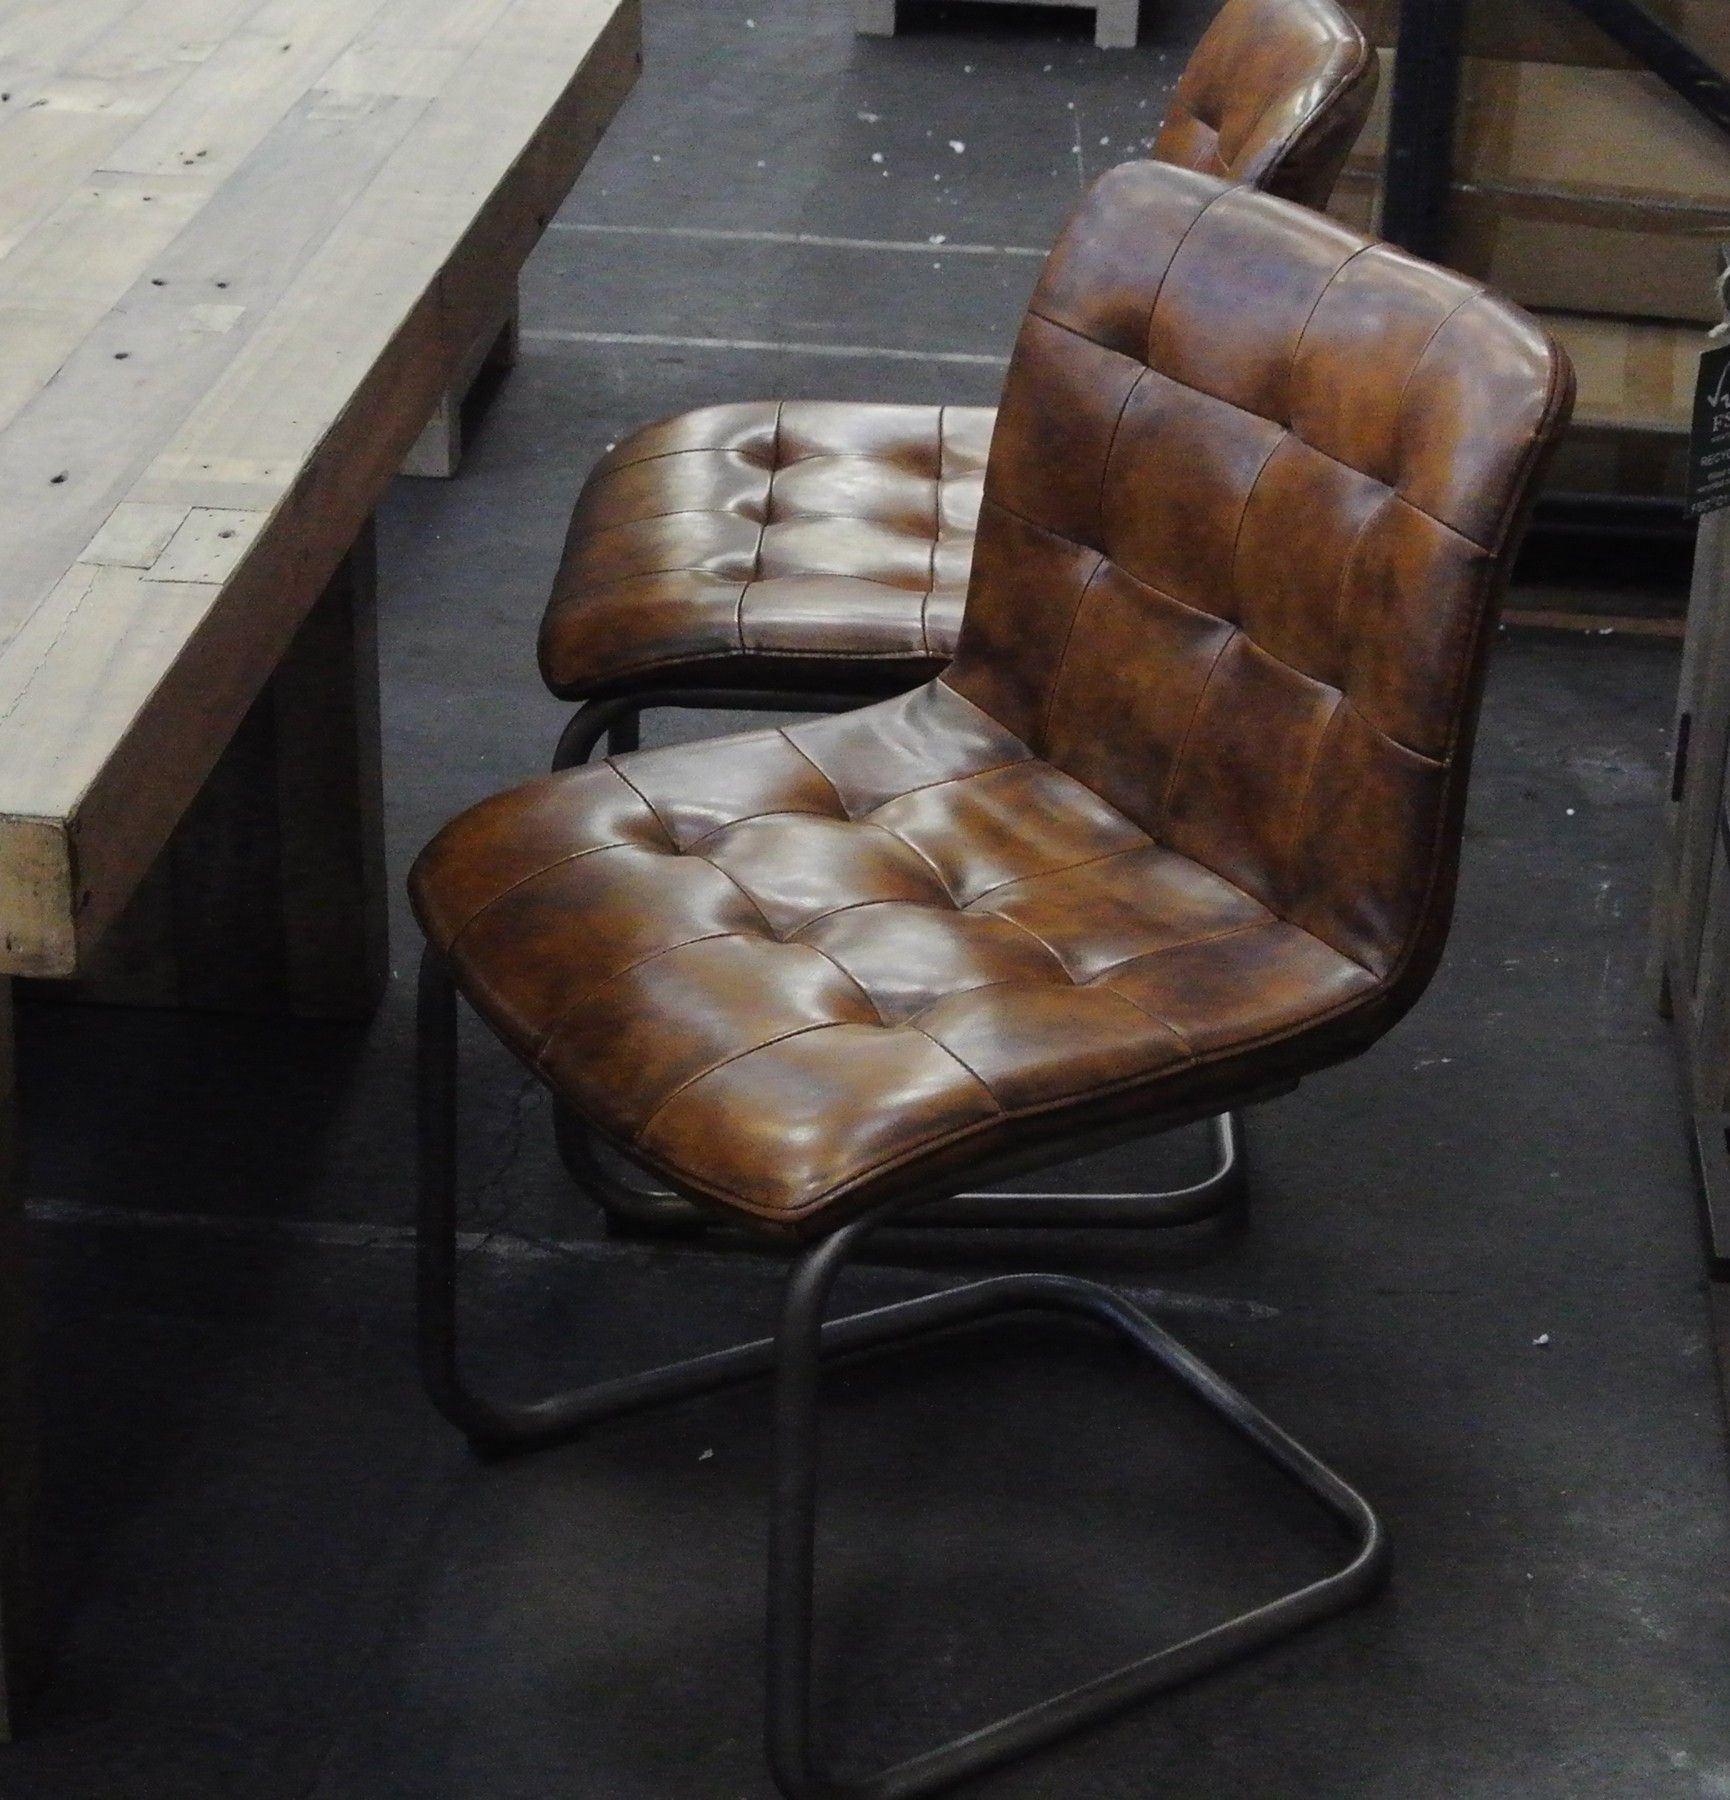 Vintage Leather Chair Perfect As A Dining or Office Chair Sturdy Metal Frame Comfort is Second To None